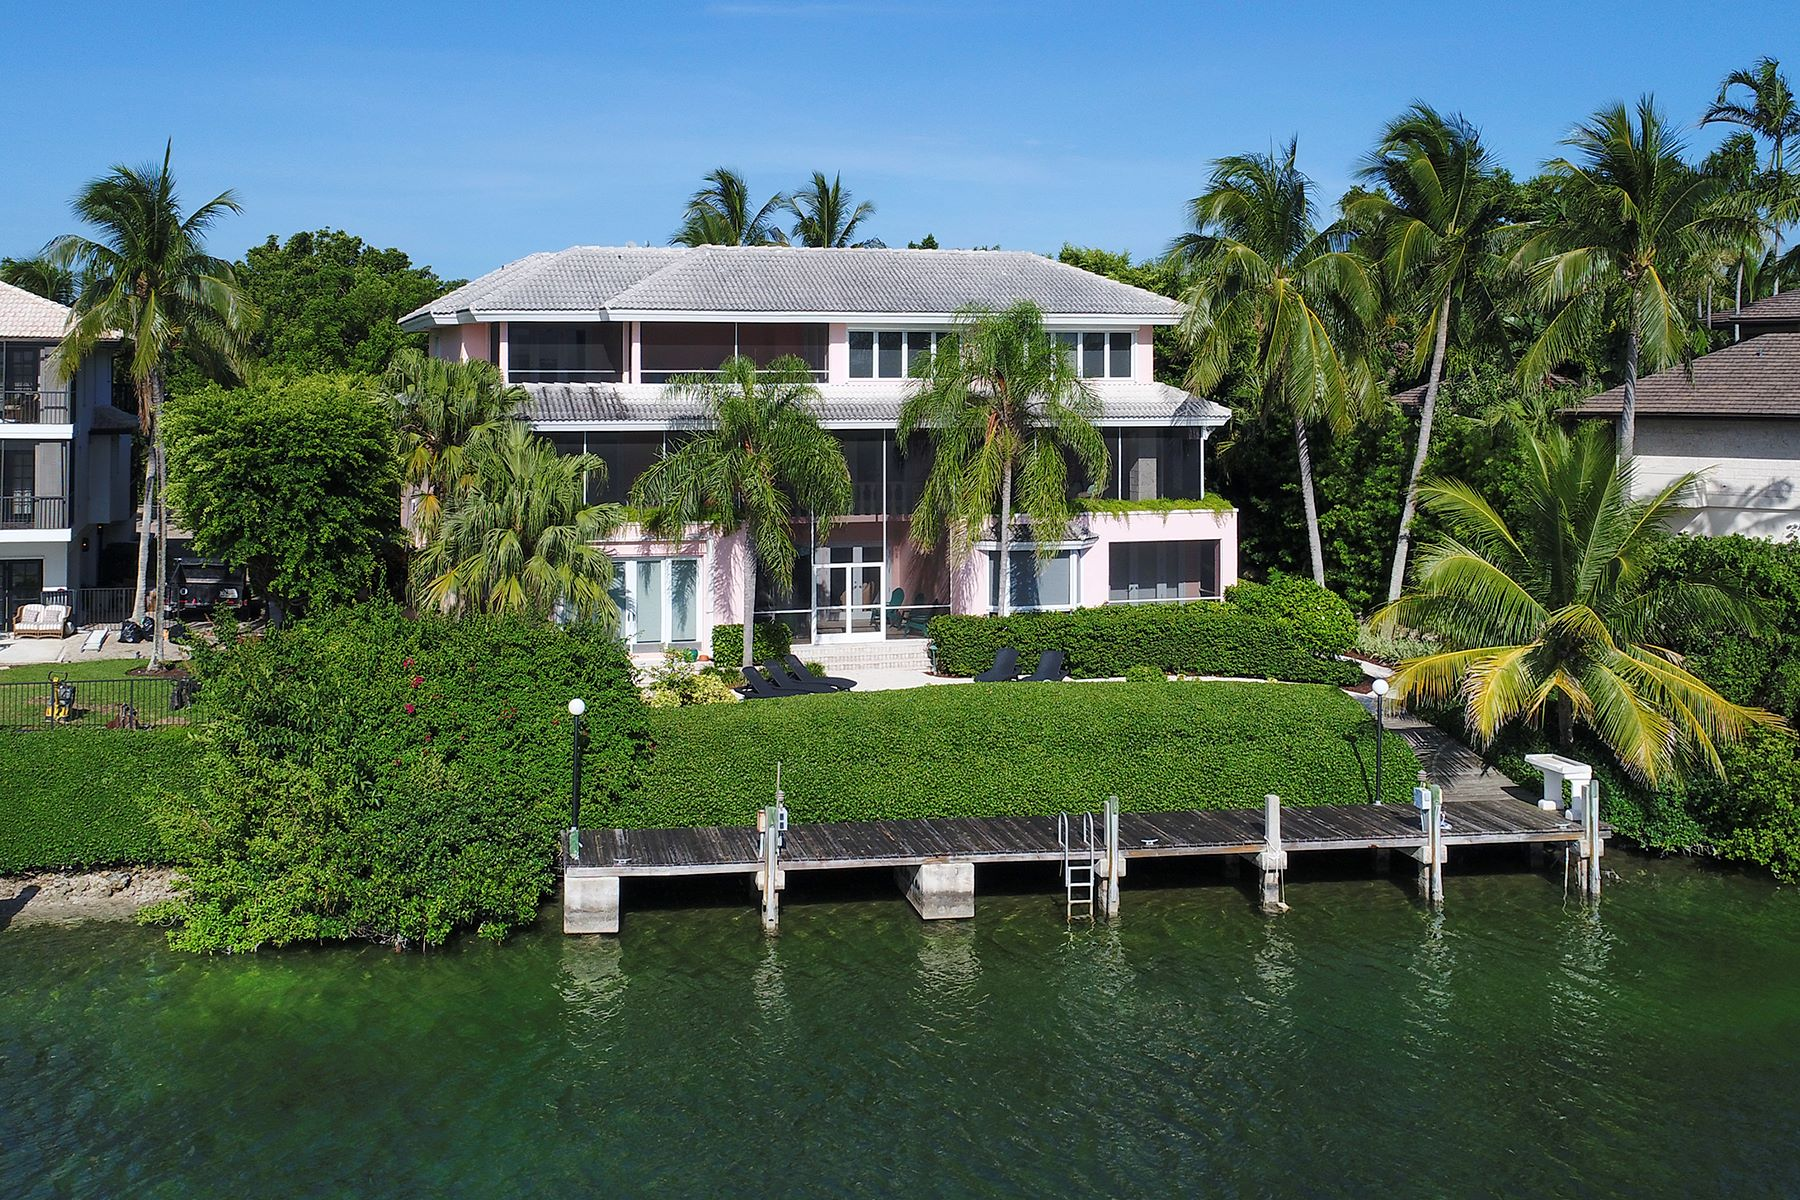 Single Family Home for Sale at Charming Waterfront Home at Ocean Reef Club 30 Cardinal Lane Key Largo, Florida 33037 United States